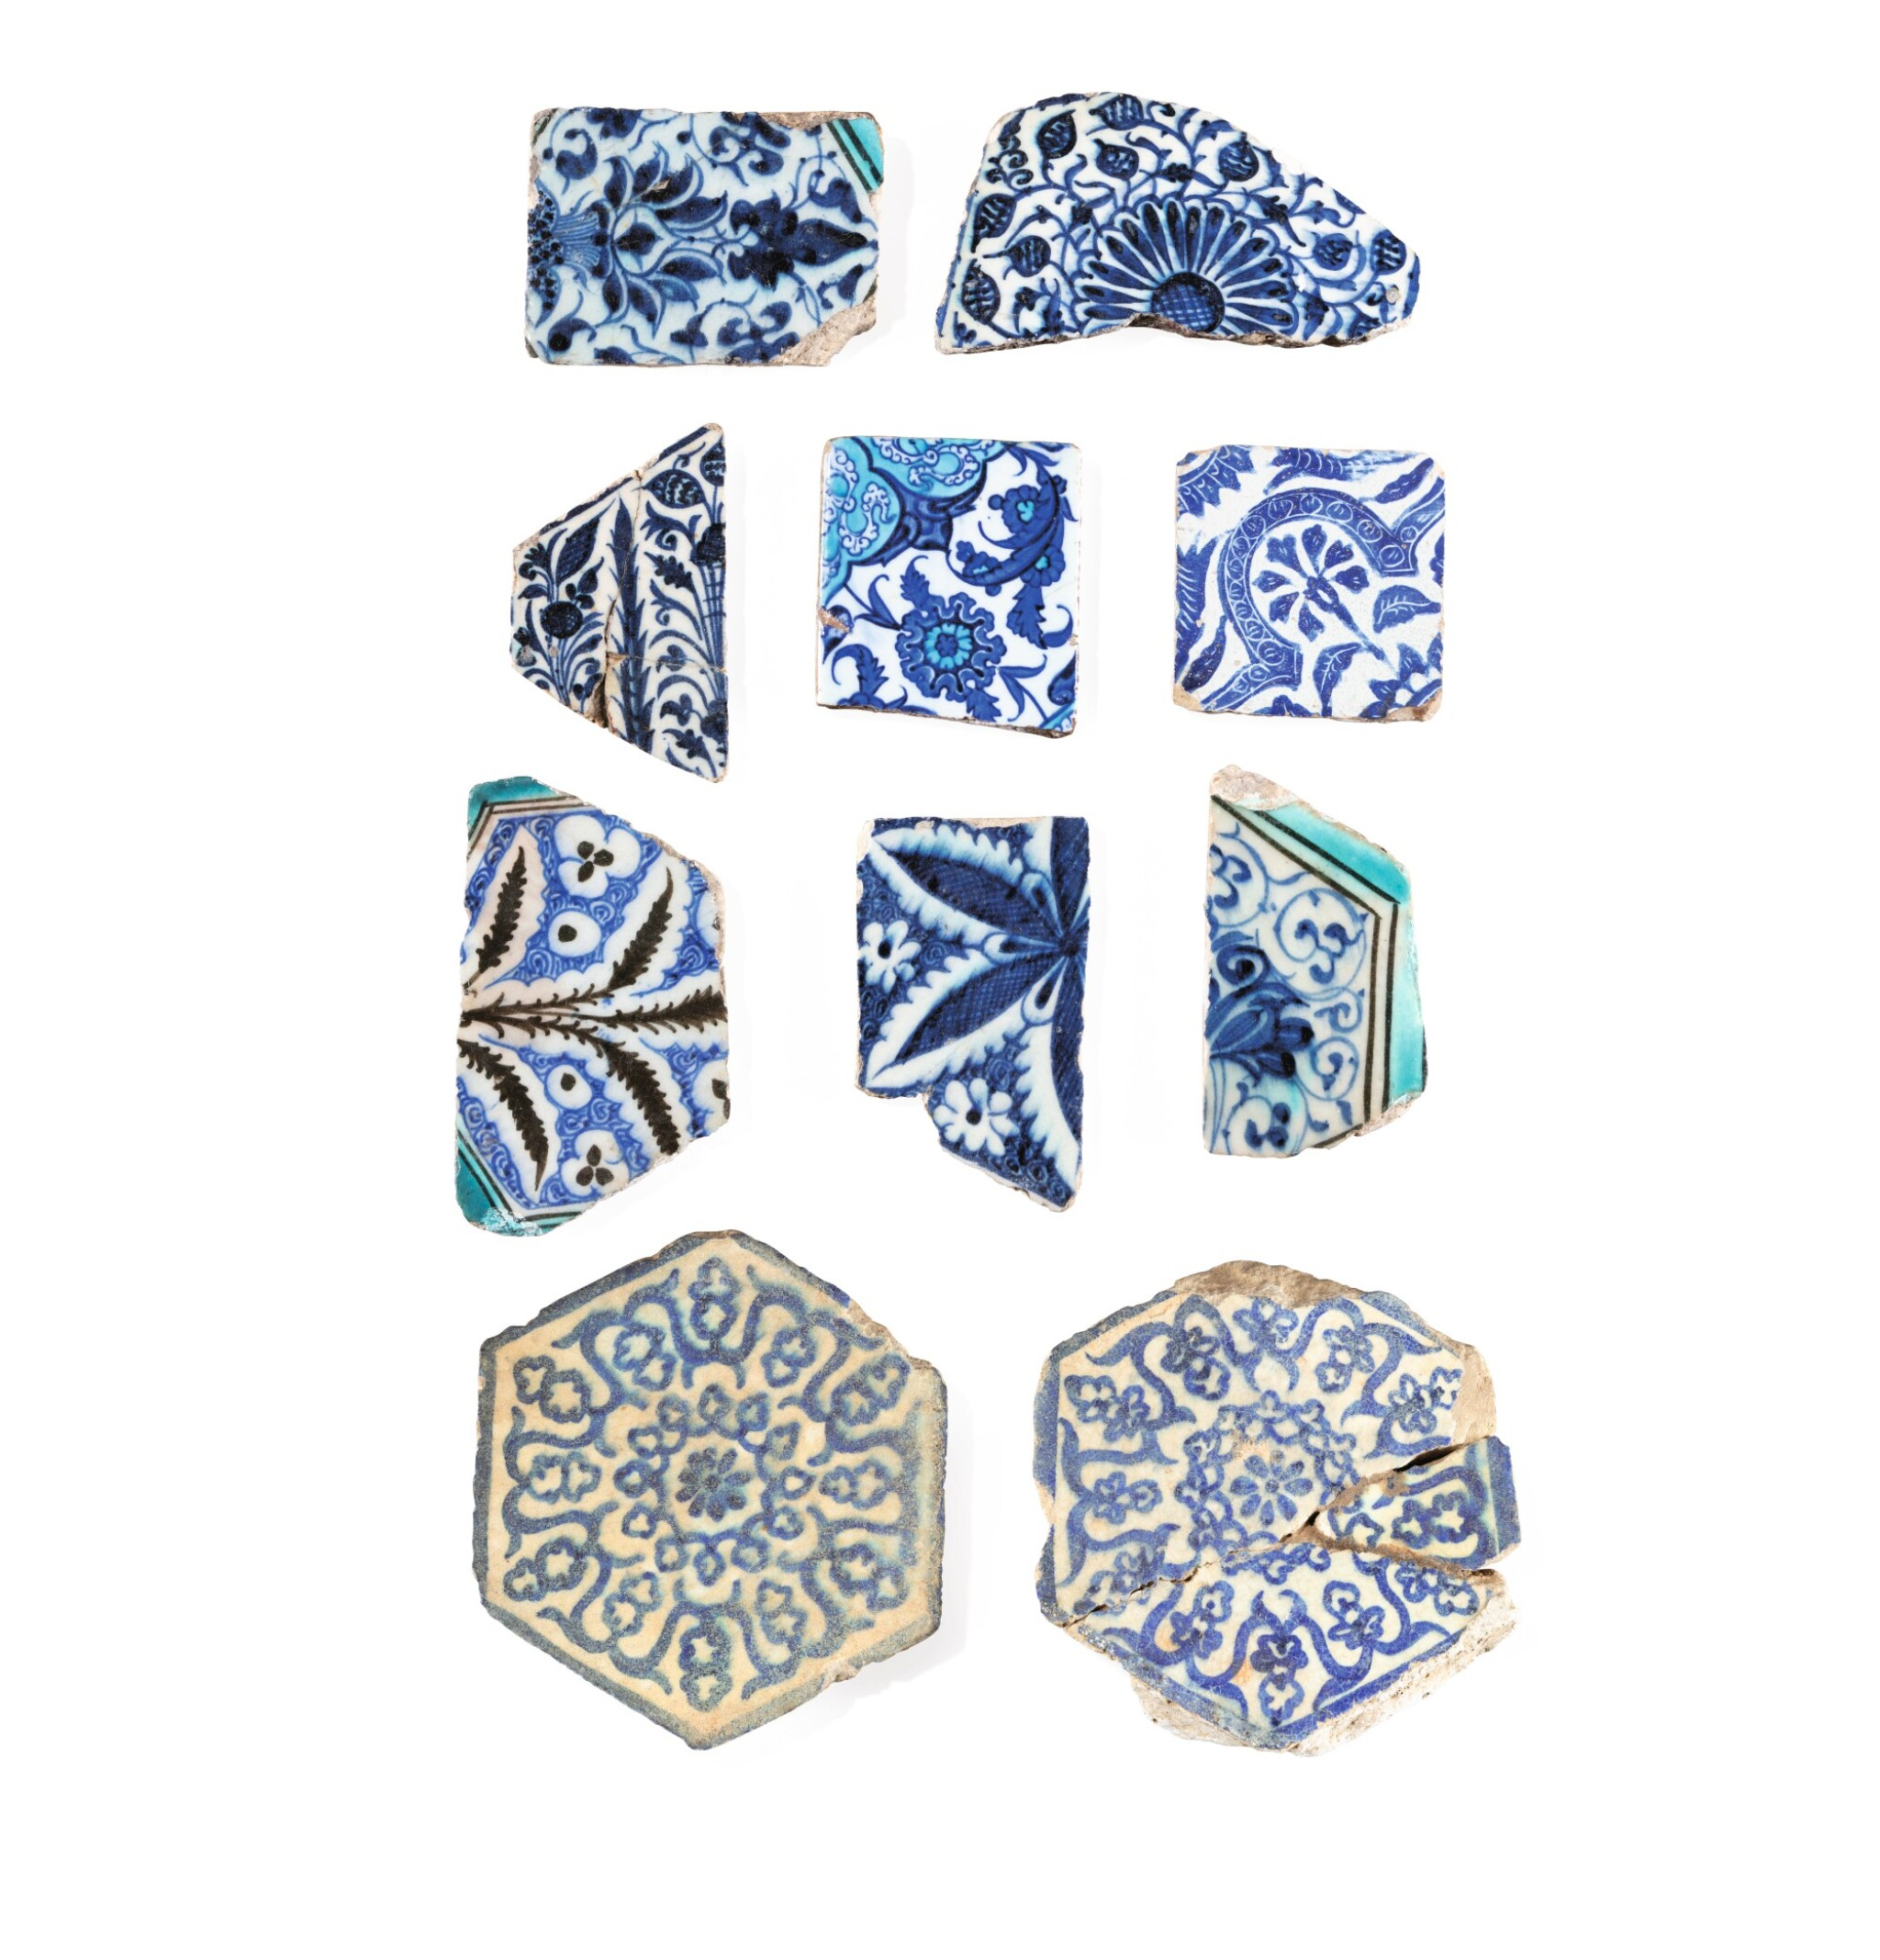 View full screen - View 1 of Lot 129. Ten Pottery Tile Fragments, Mamluk, Ottoman, Timurid and European, 15th-18th centuries.